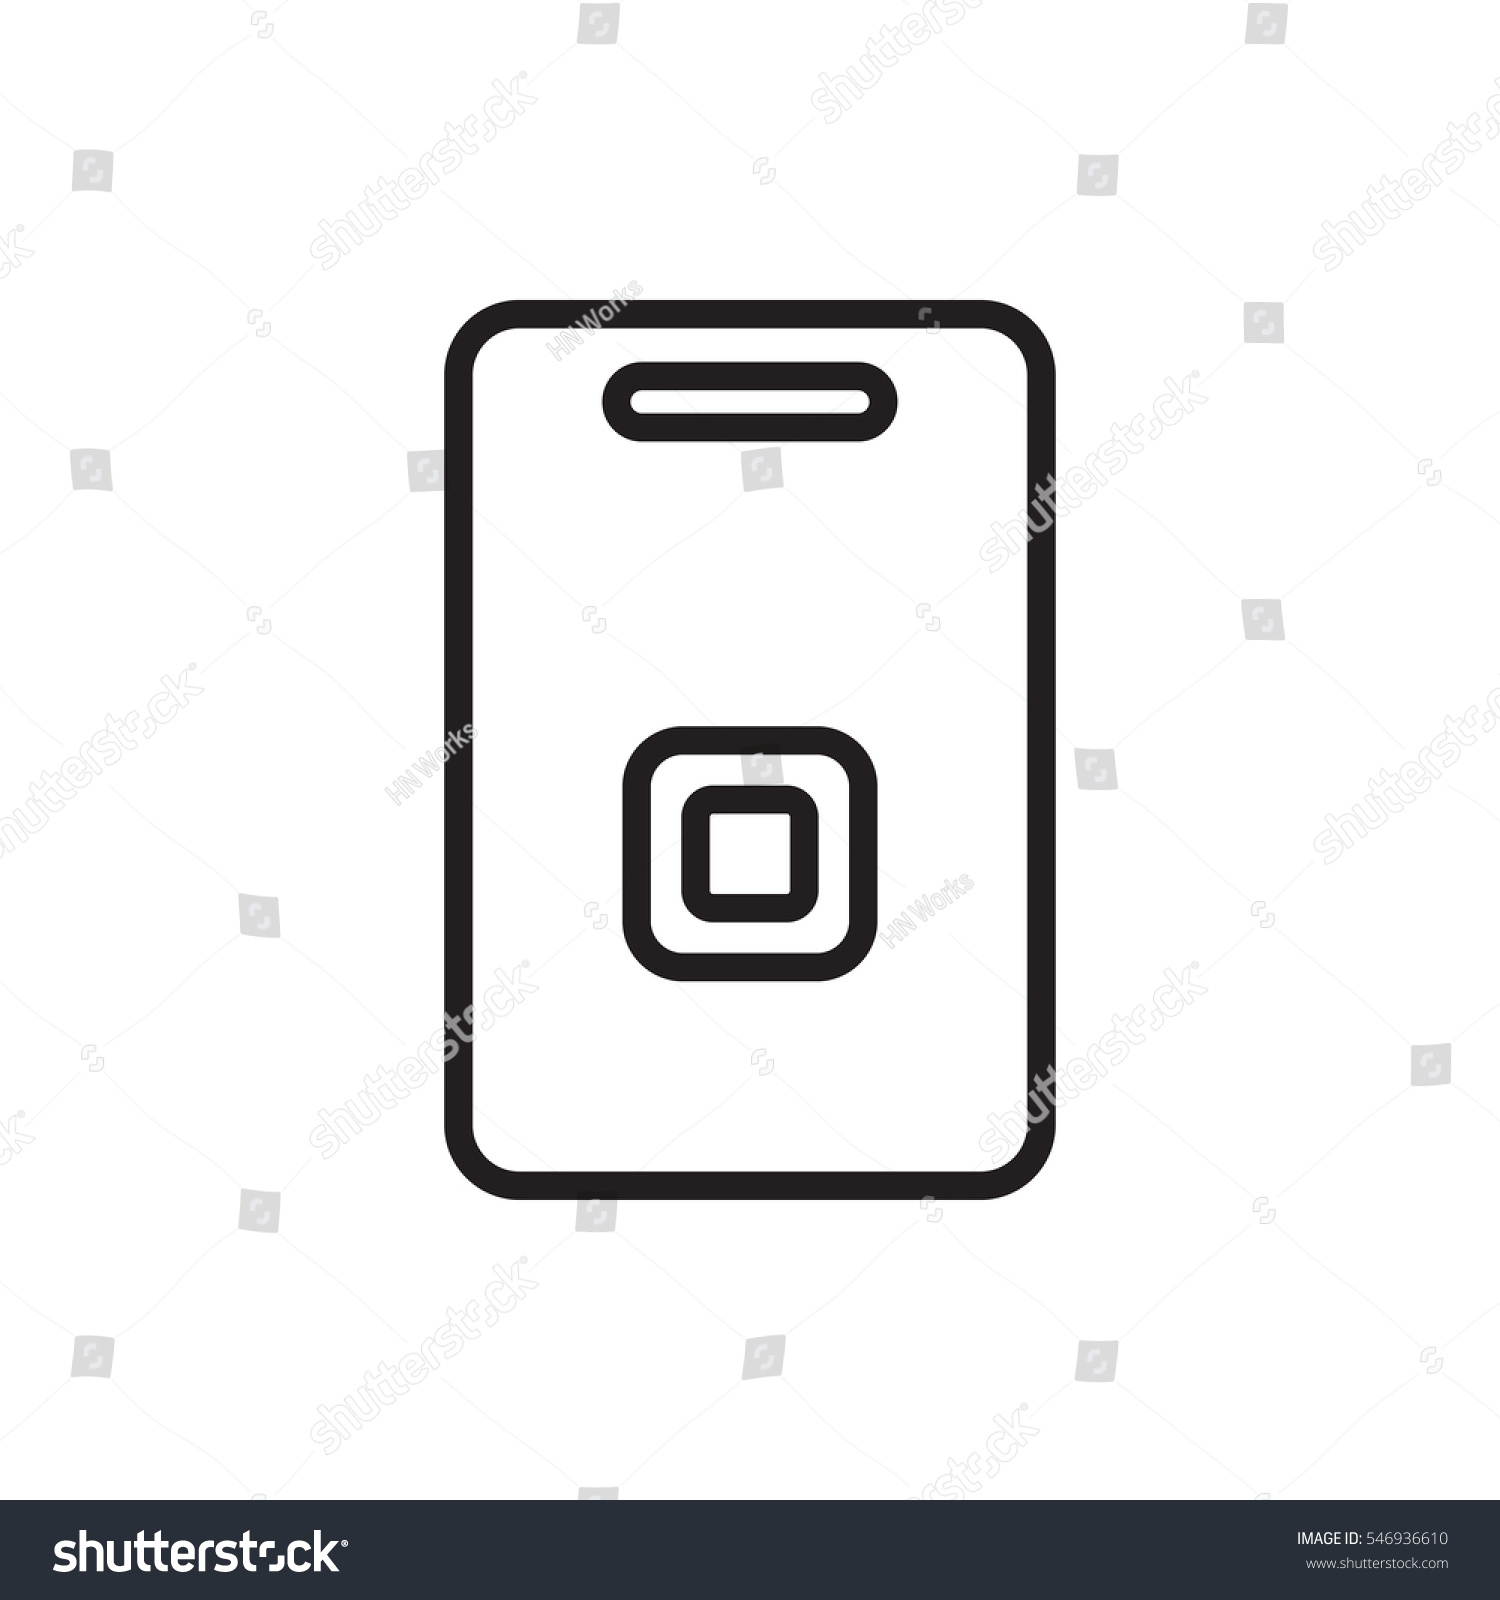 door ringer icon illustration isolated vector  sc 1 st  Shutterstock & Door Ringer Icon Illustration Isolated Vector Stock Vector ...